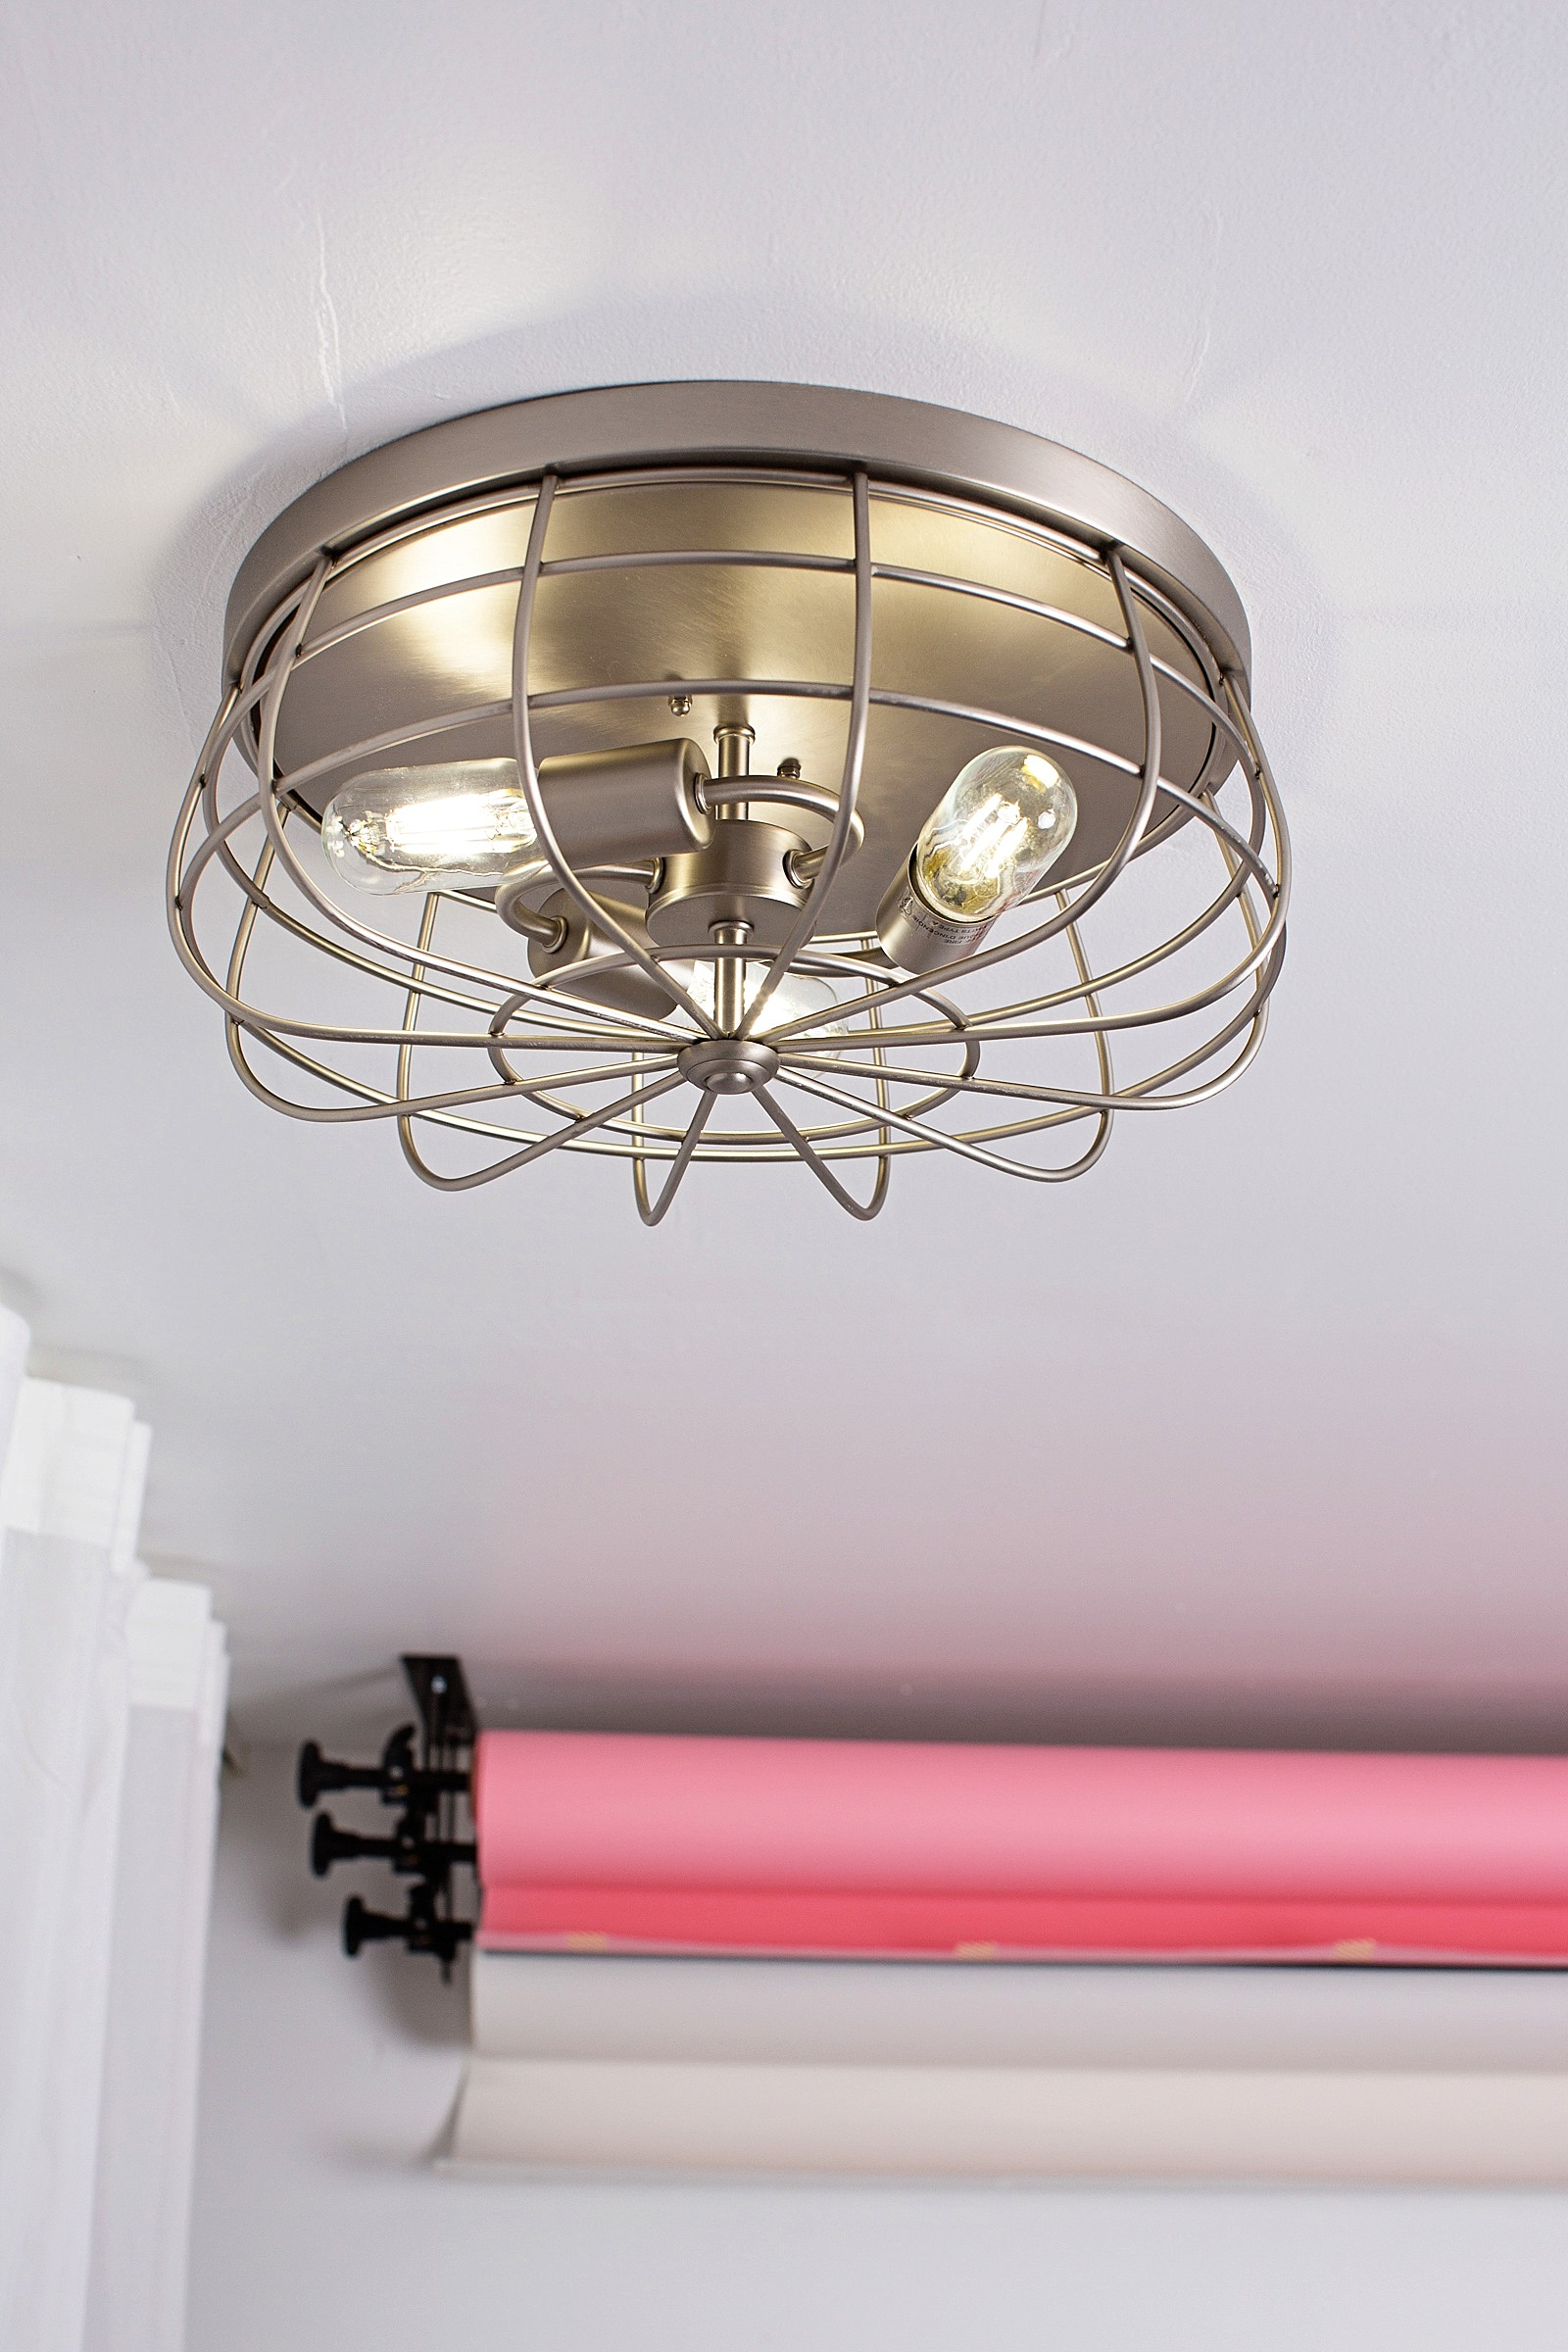 home-photography-studio-reveal-build-com-millenium-ceiling-light-1821